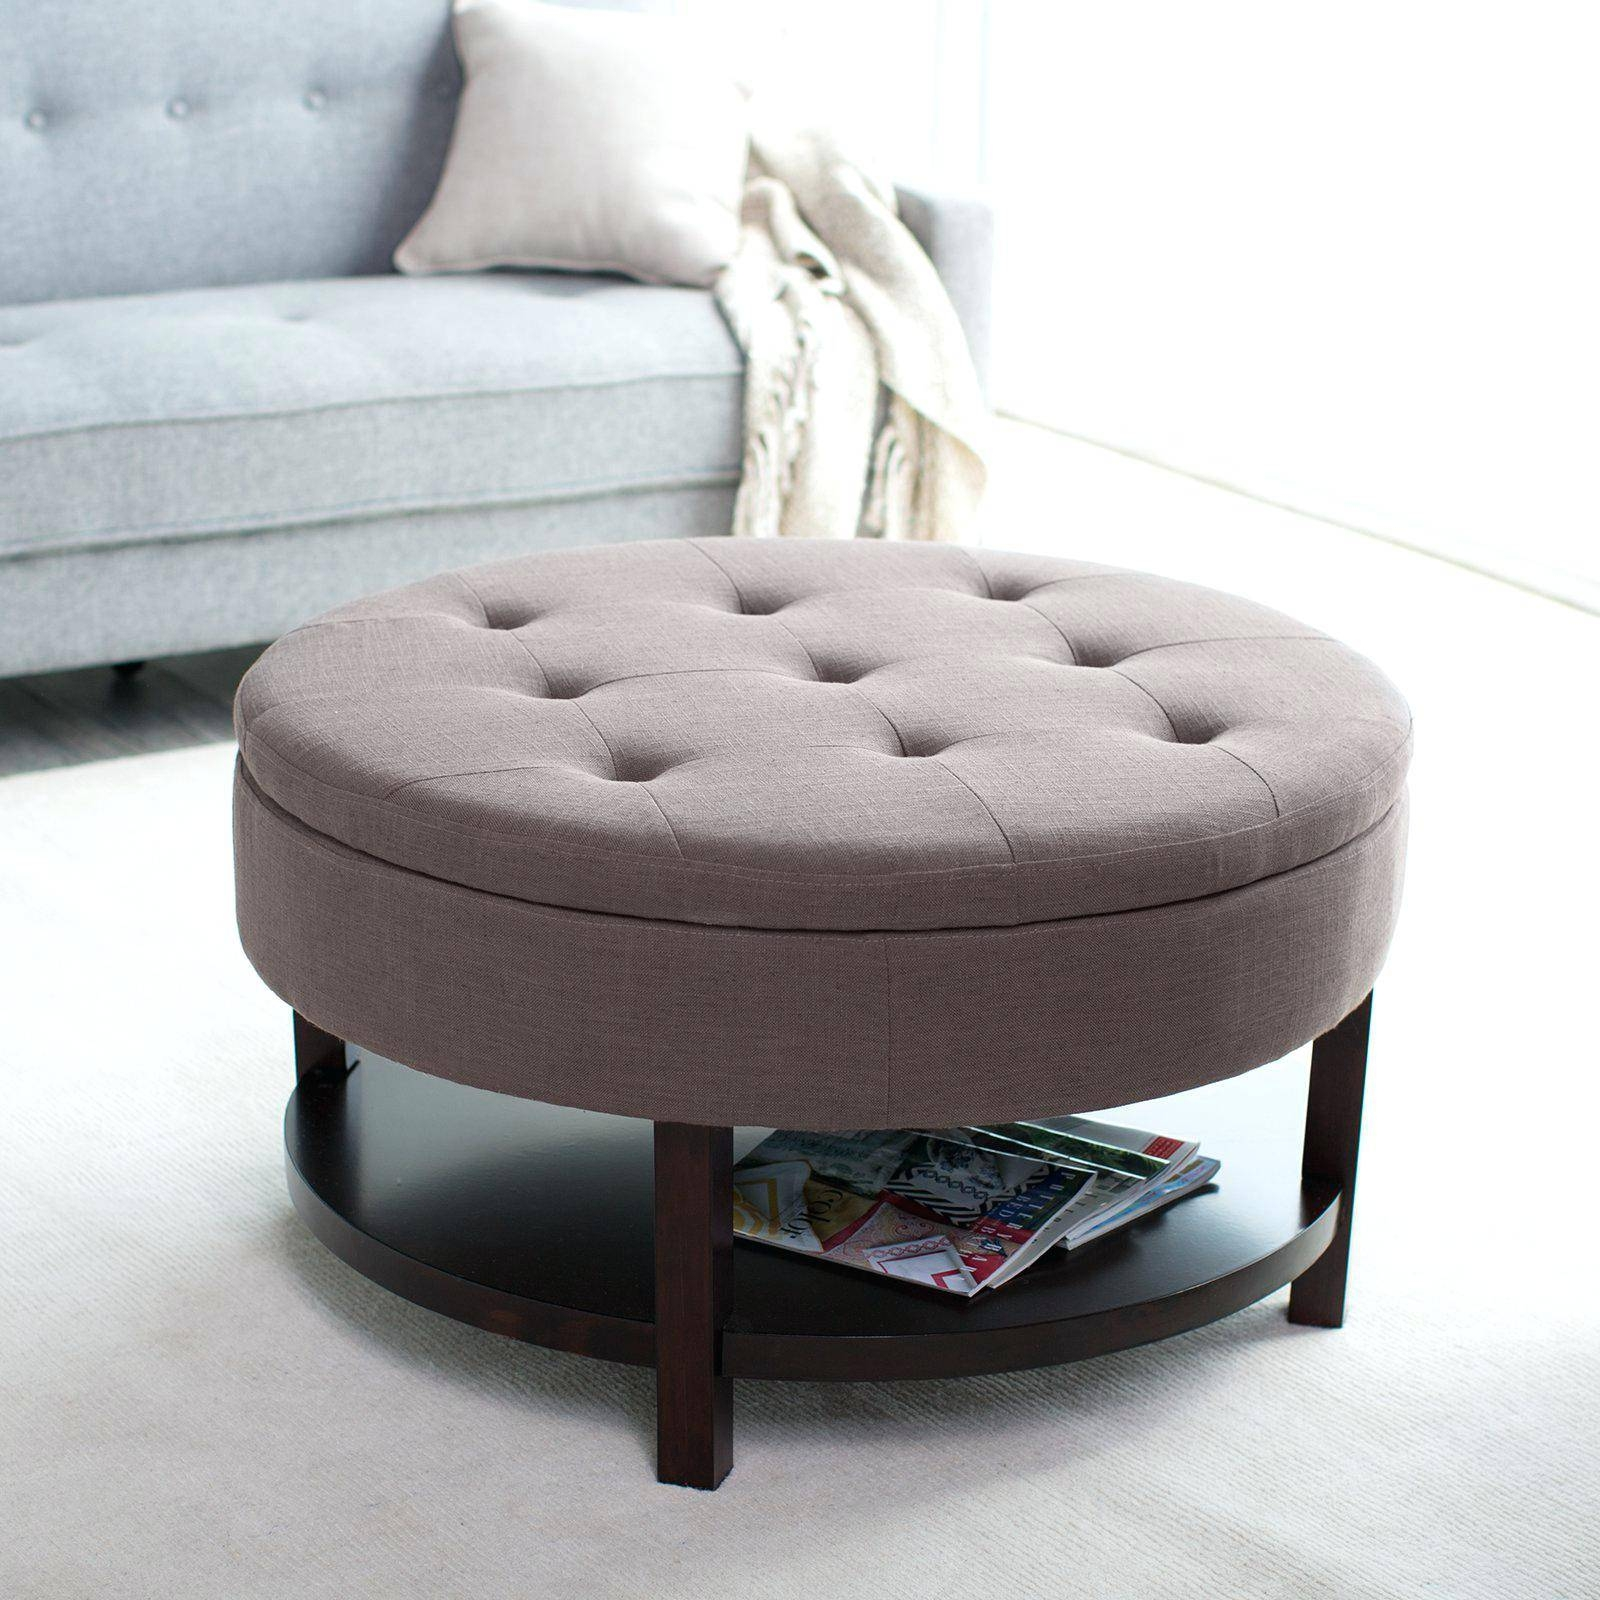 Coffee Tables Storage Circular Table With A Wire Box - Jericho pertaining to Circular Coffee Tables With Storage (Image 13 of 30)